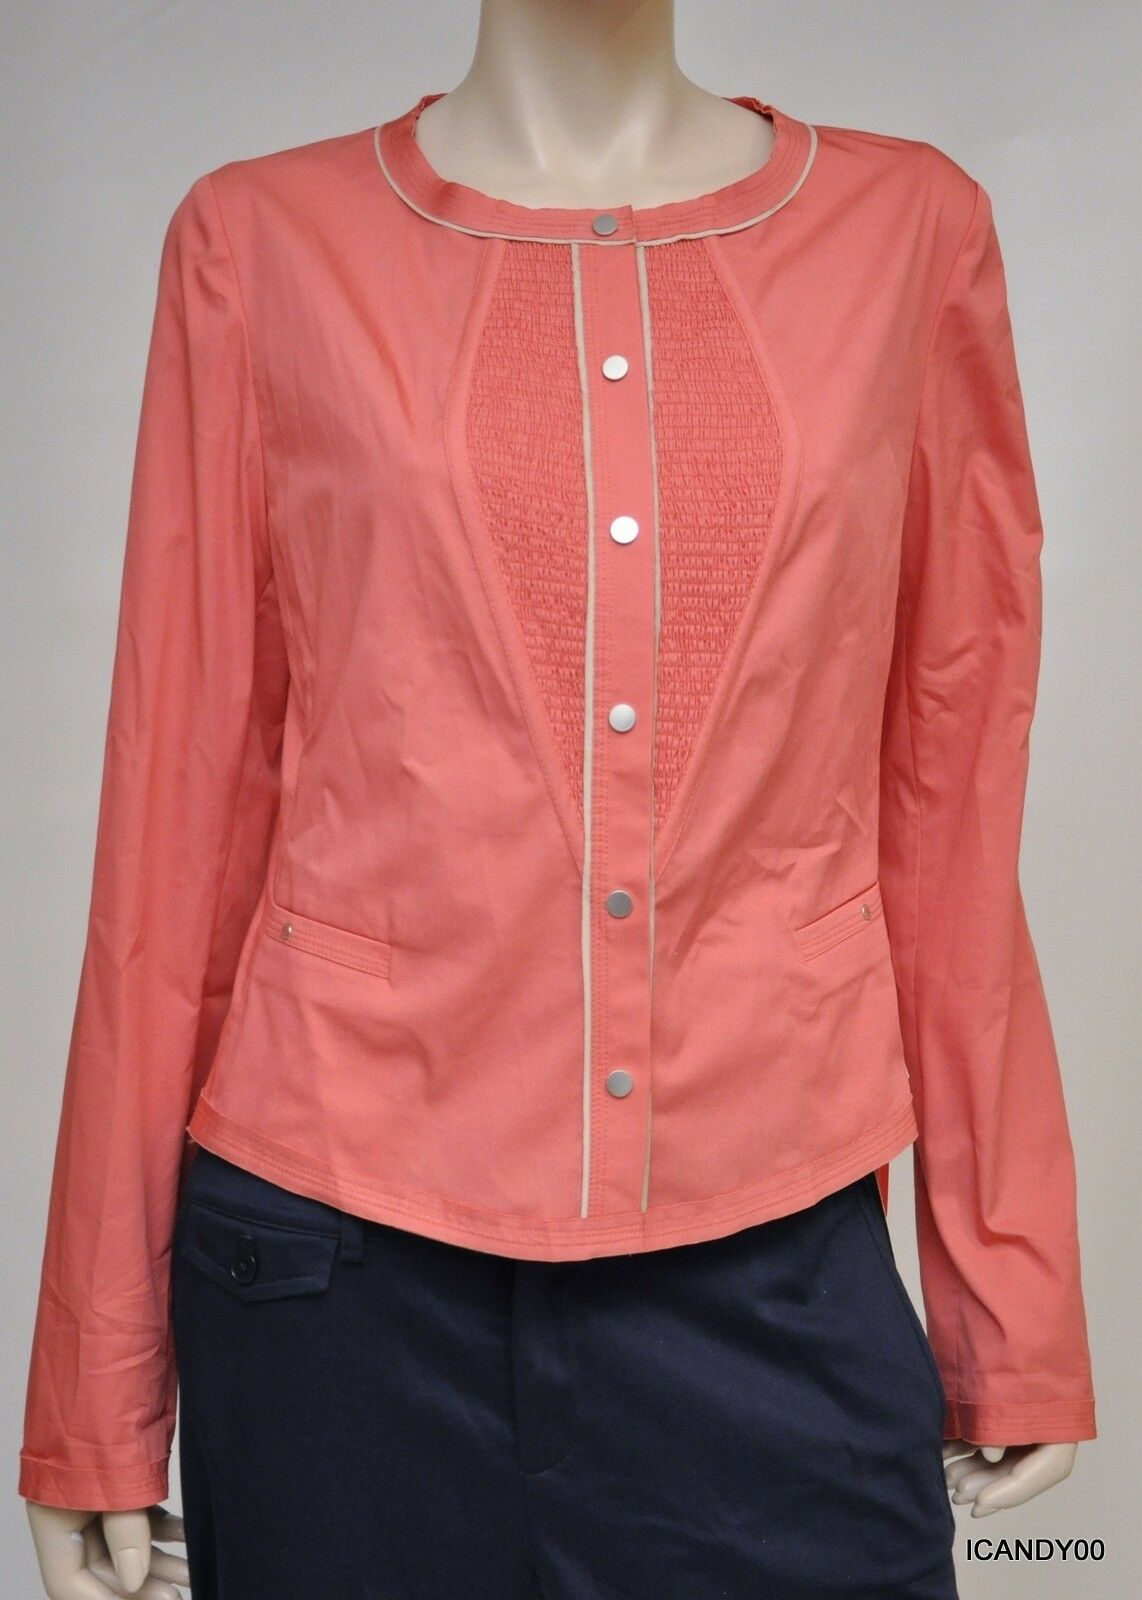 New  Elie Tahari LUCY Stretch-Cotton Shirt Dress Blouse Top Coral 6 42